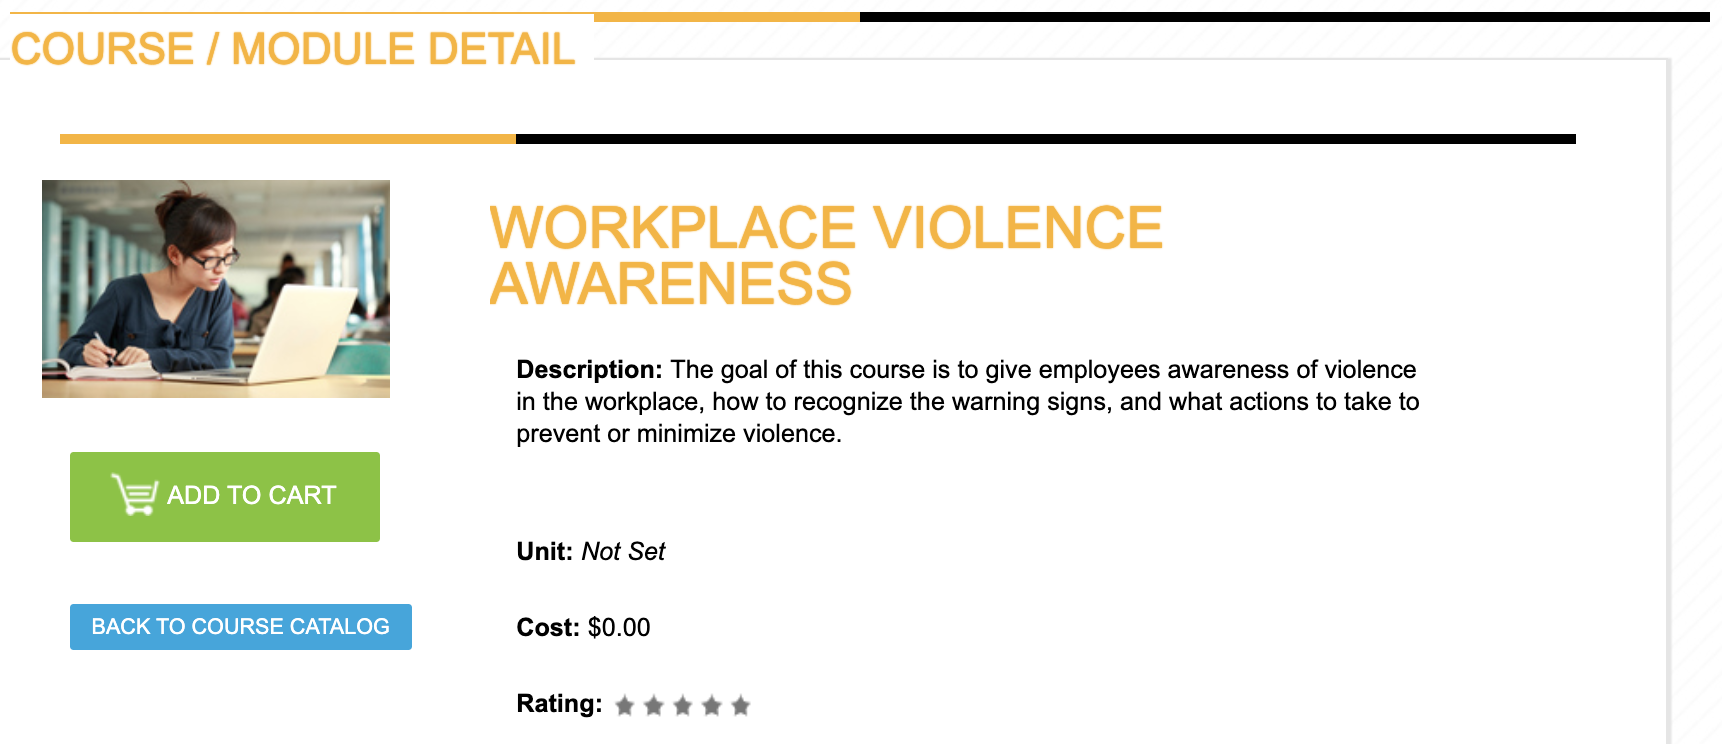 Workplace Violence Prevention Training Course - Workplace Violence Awareness from Myicourse